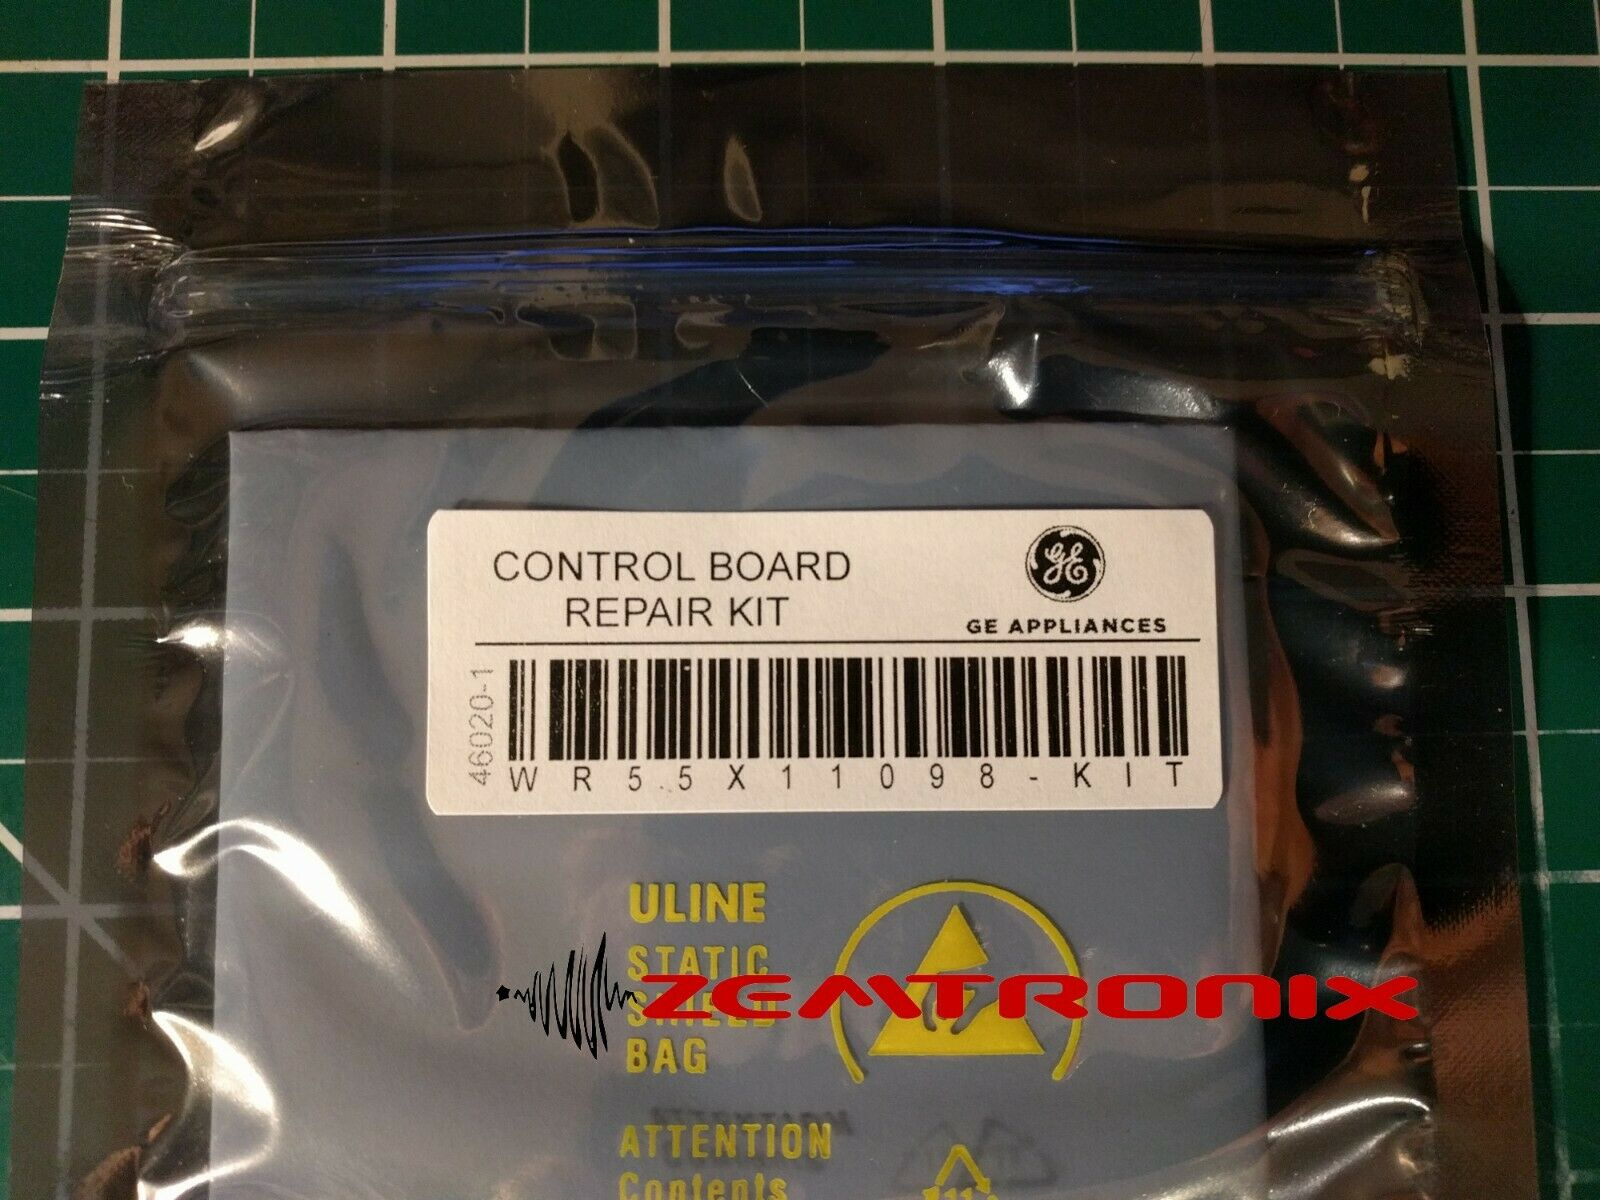 Control Board Repair Kit for WR55X11098 225D3466G007 GE RCA Hotpoint